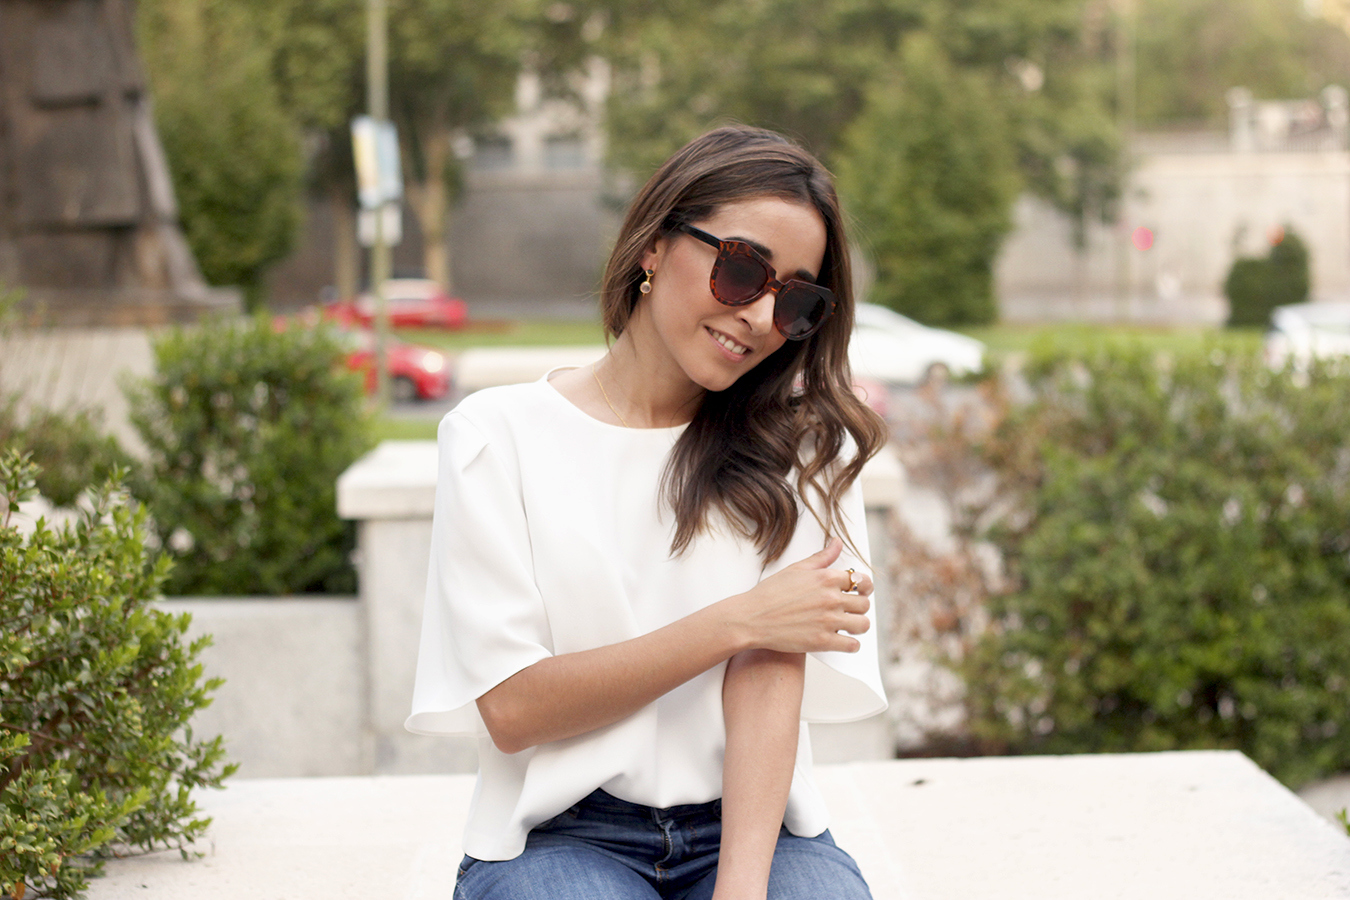 White blouse jeans earrings jewellery corte ingles joyería verano summer outfit style5